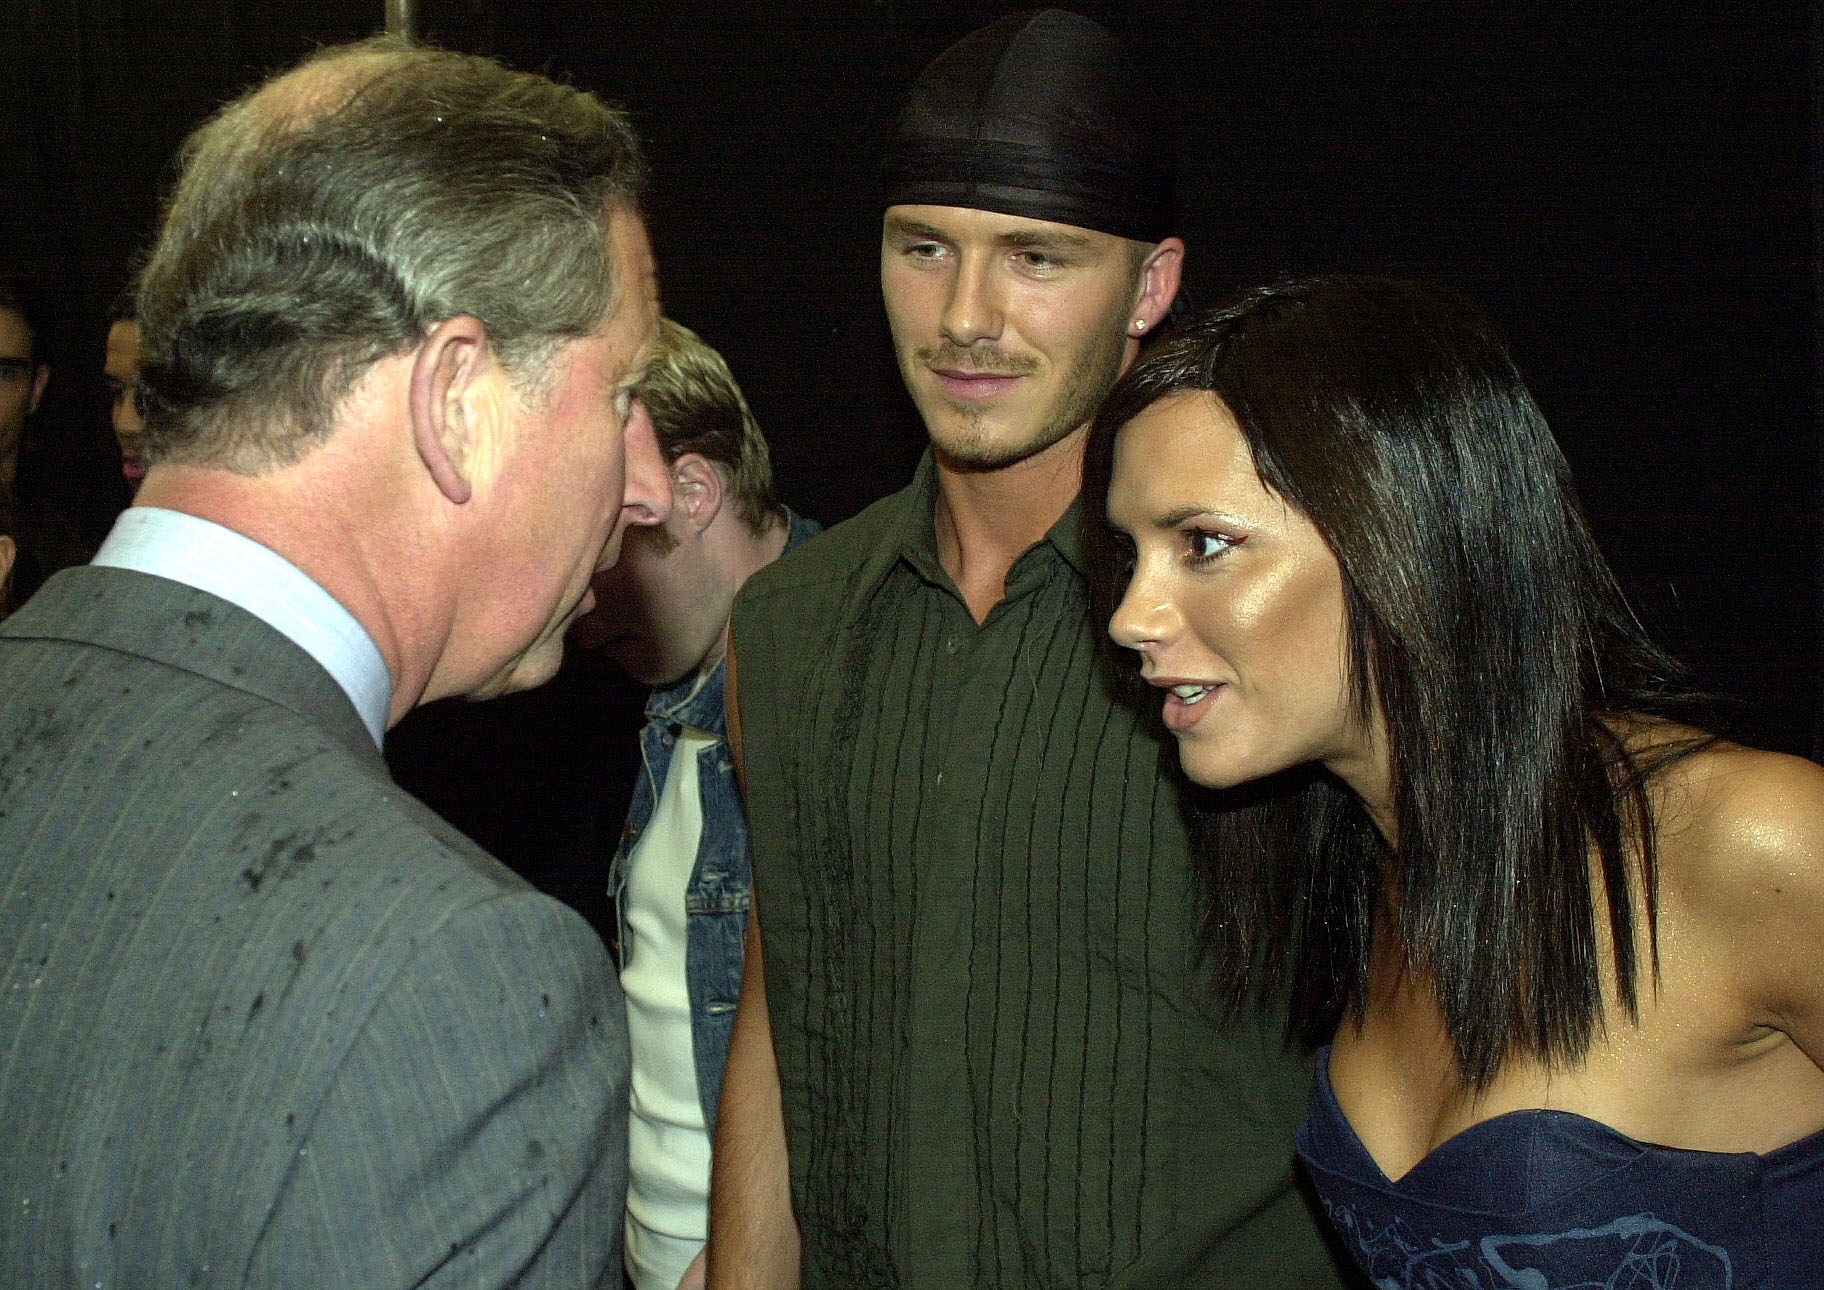 The Prince of Wales, (r) meets pop star Victoria Beckham (Posh Spice) and her footballing husband David at the Princes Trust Capital FM Party in the Park 2000, London. Victoria made her solo debut at the huge outdoor charity show.